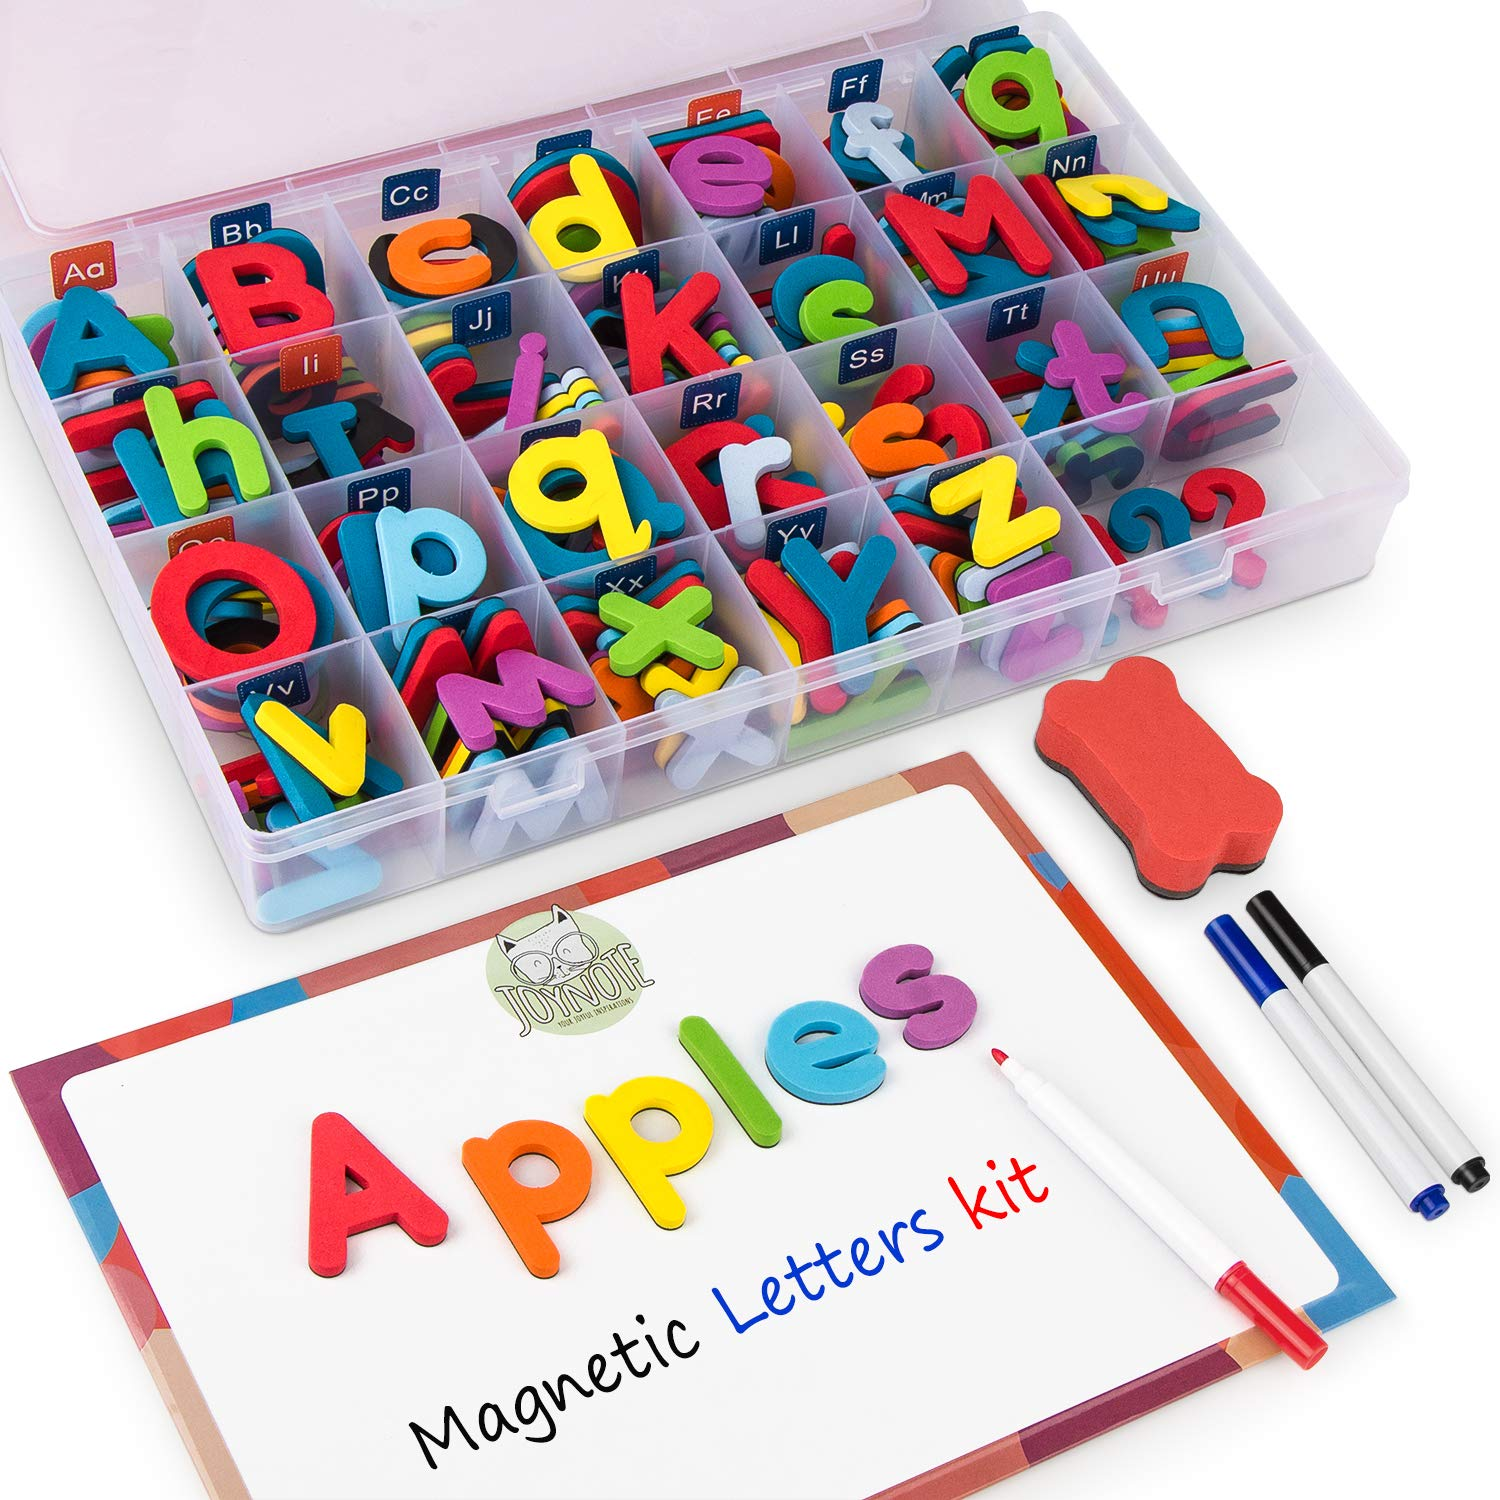 Gamenote Classroom Magnetic Alphabet Letters Kit 208 Pcs with Double-Side Magnet Board - Foam Alphabet Letters for Preschool Kids Toddler Spelling and Learning Colorful by Gamenote